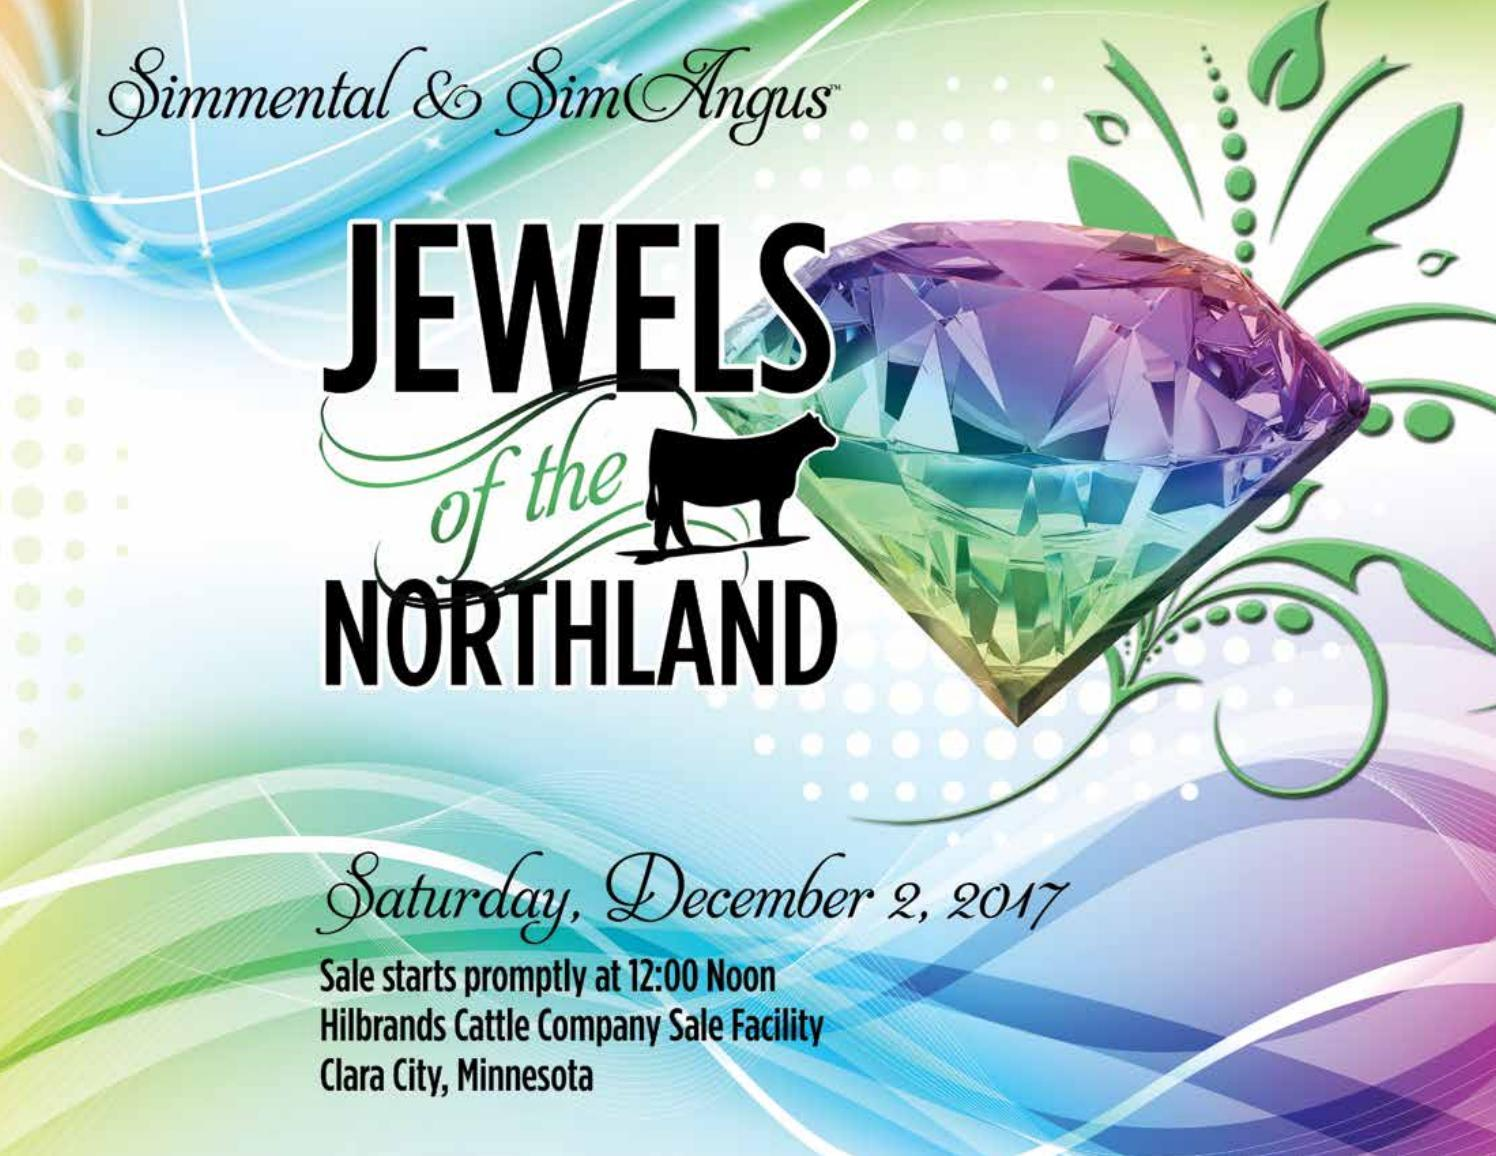 Jewels of the Northland 2017 by Eberspacher Enterprises - issuu